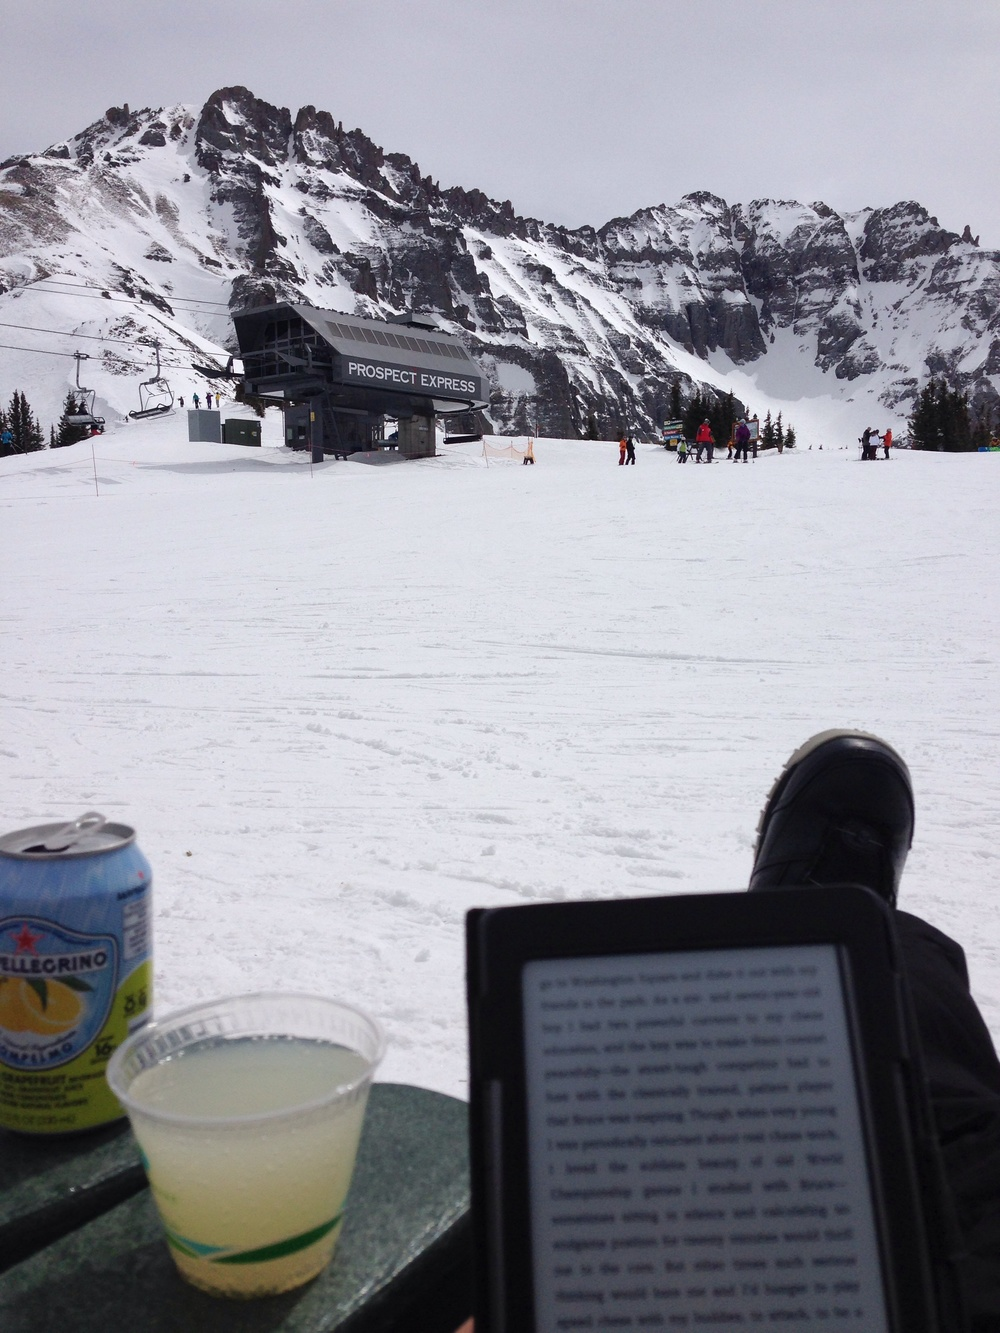 Chairs at the high camp at the top of the Project Express lift for some San Pellegrino & vodka + The Art of Learning